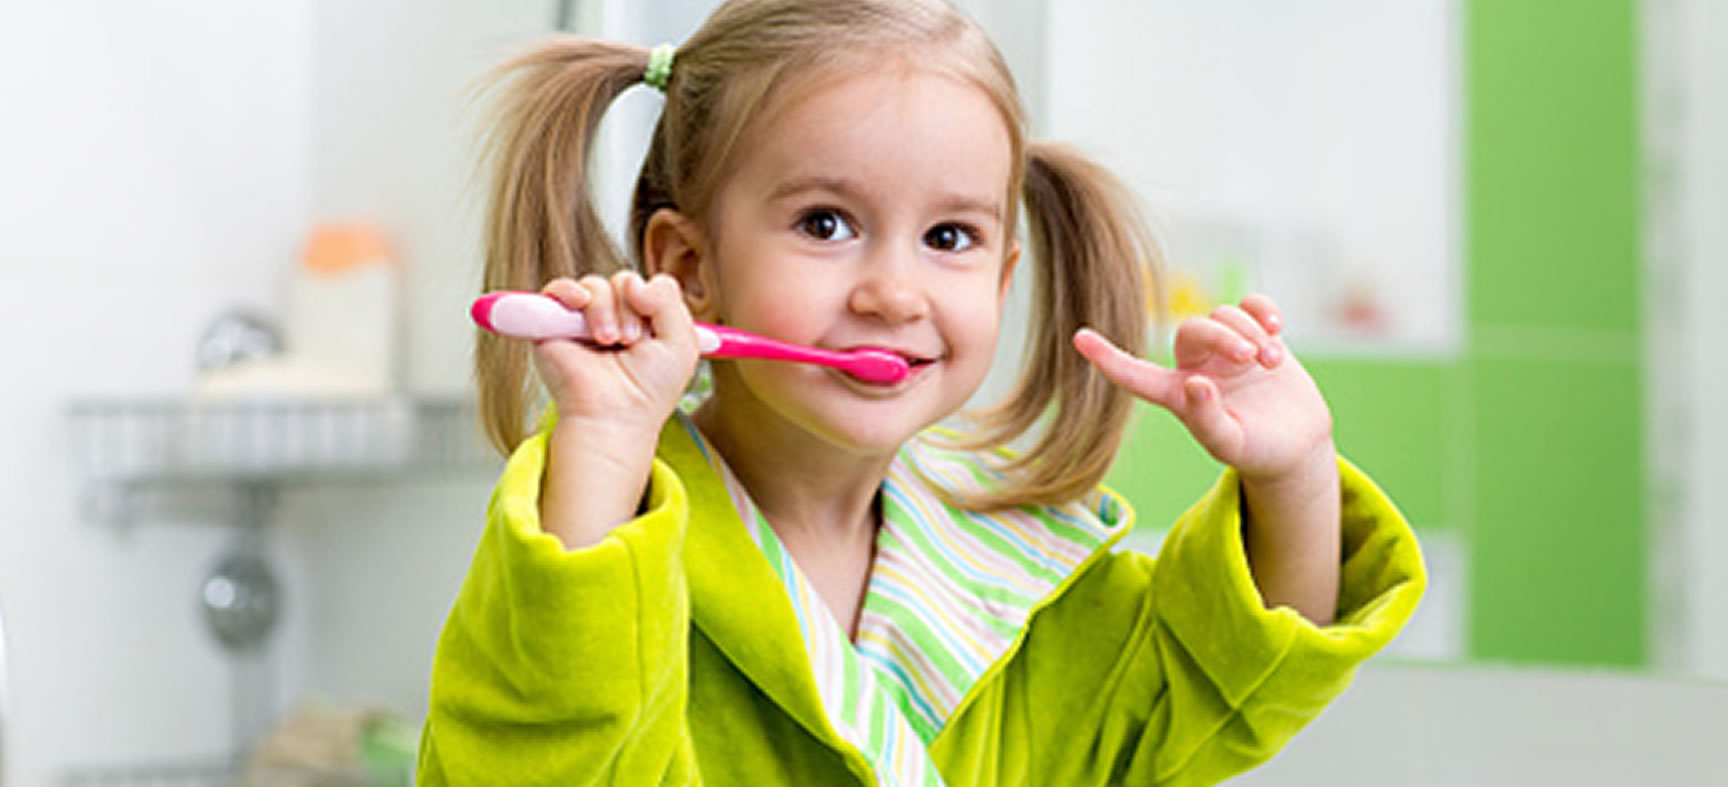 Dental Health for Kids - 11 Ways to Healthy Teeth